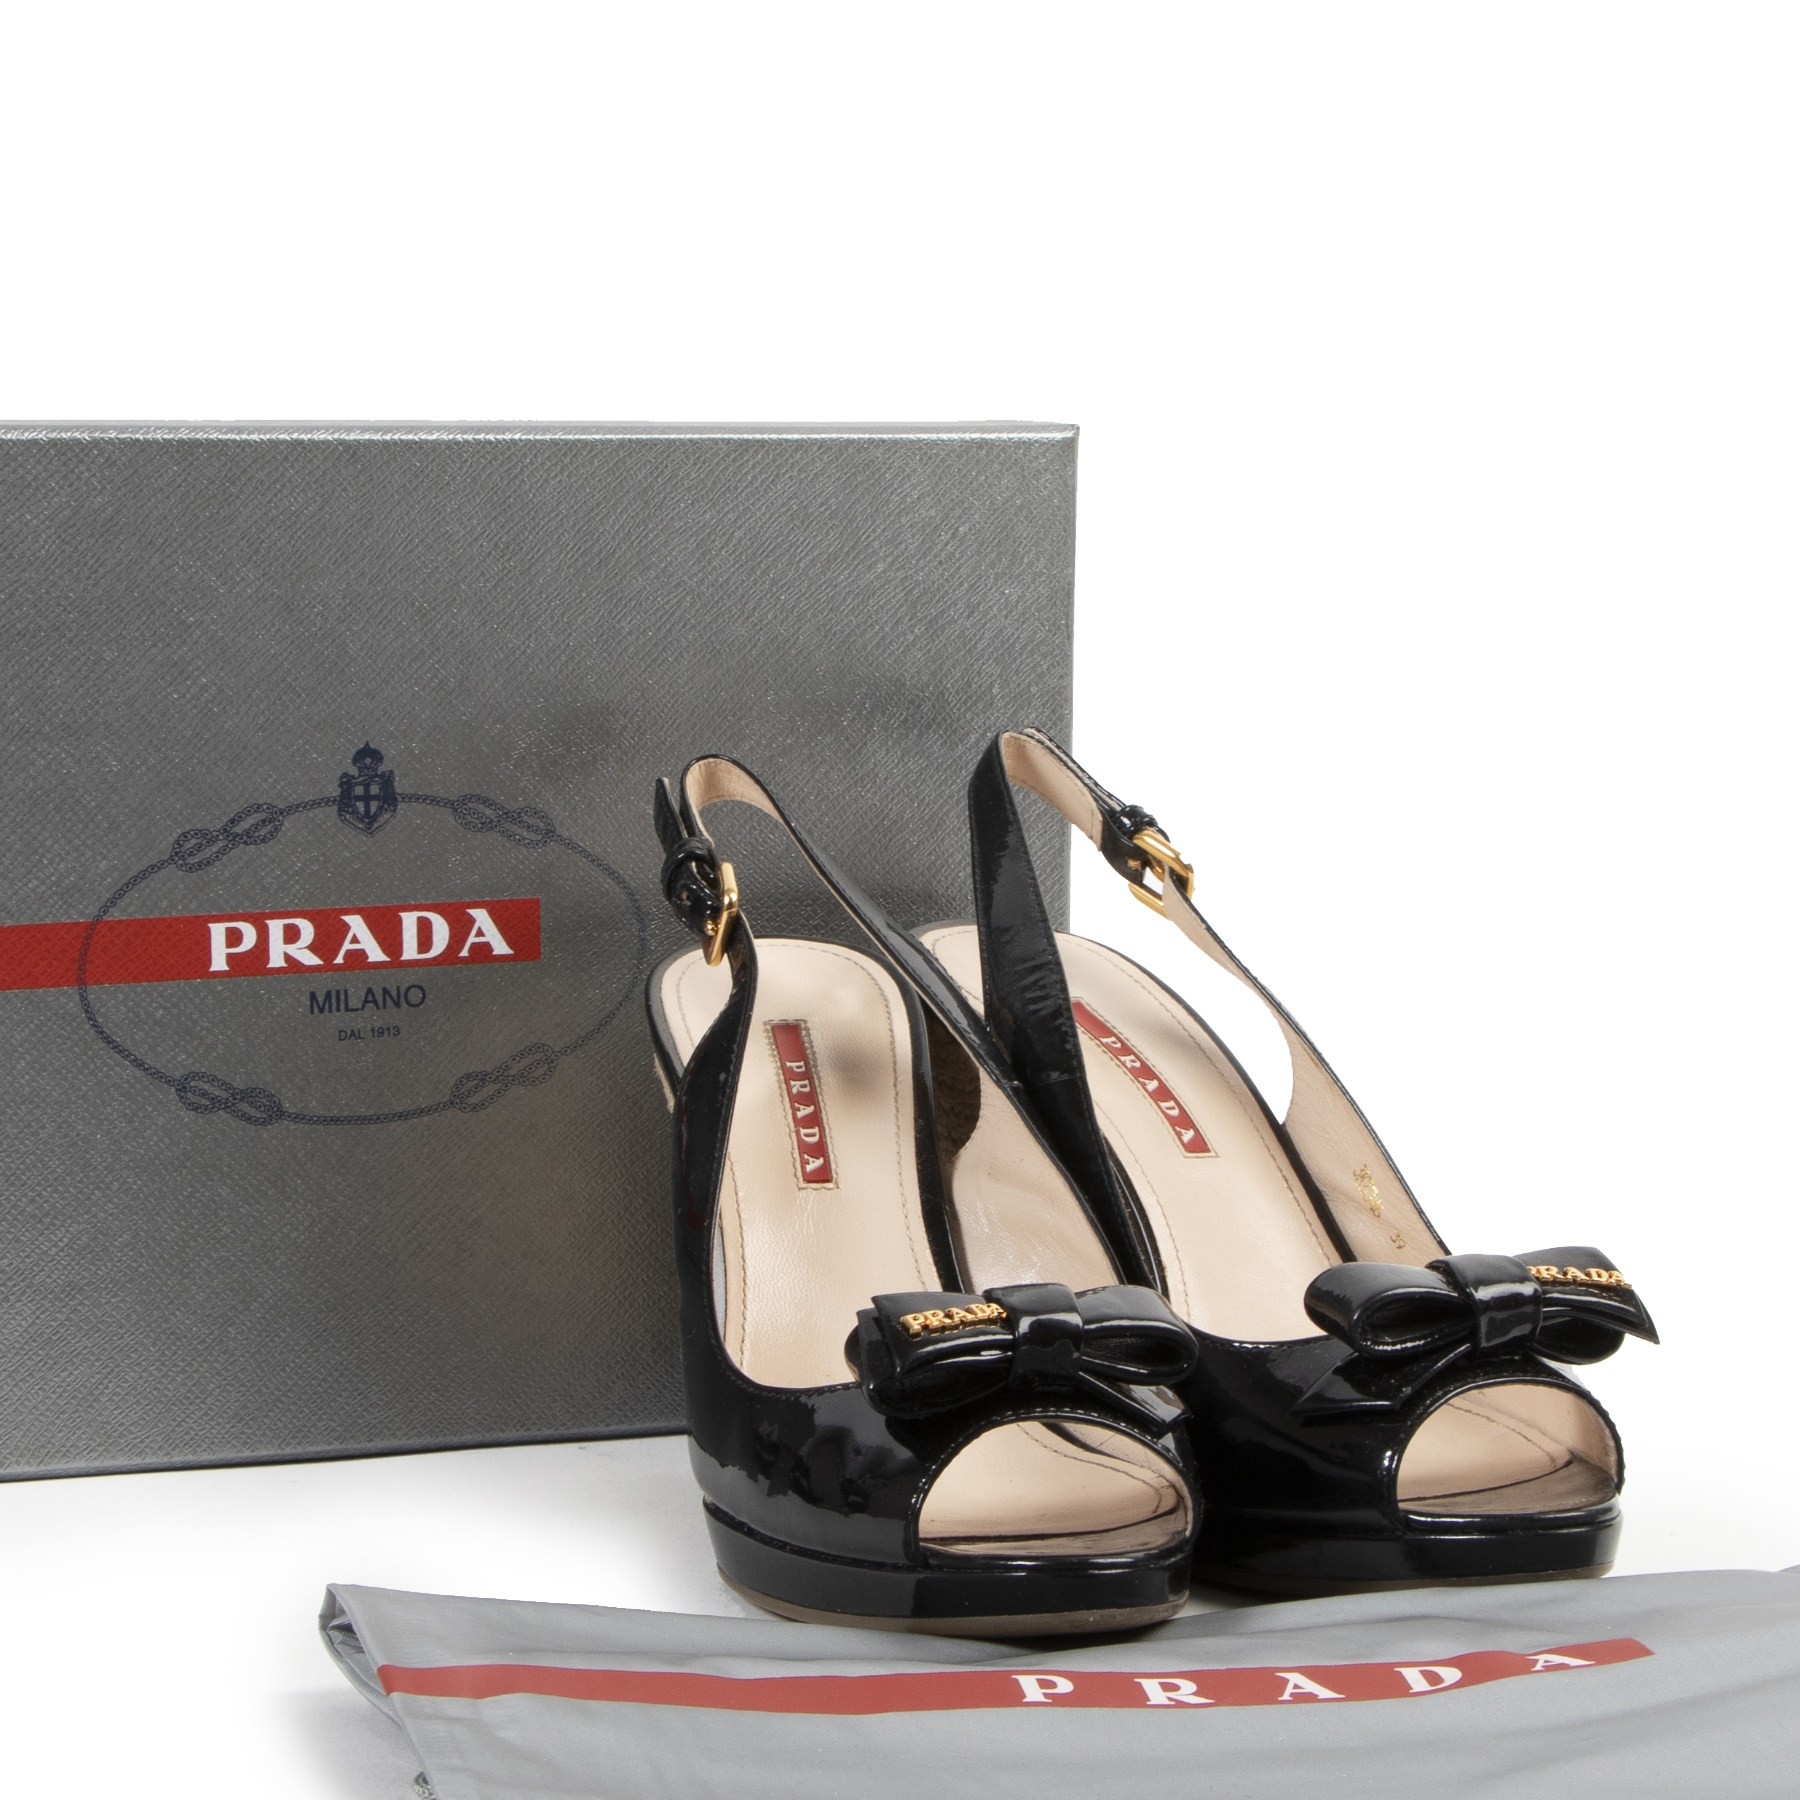 Authentic secondhand Prada Black Patent Leather Bow Espadrille Wedge Sandals - Size 39  designer shoes pumps fashion luxury vintage webshop safe secure online shopping